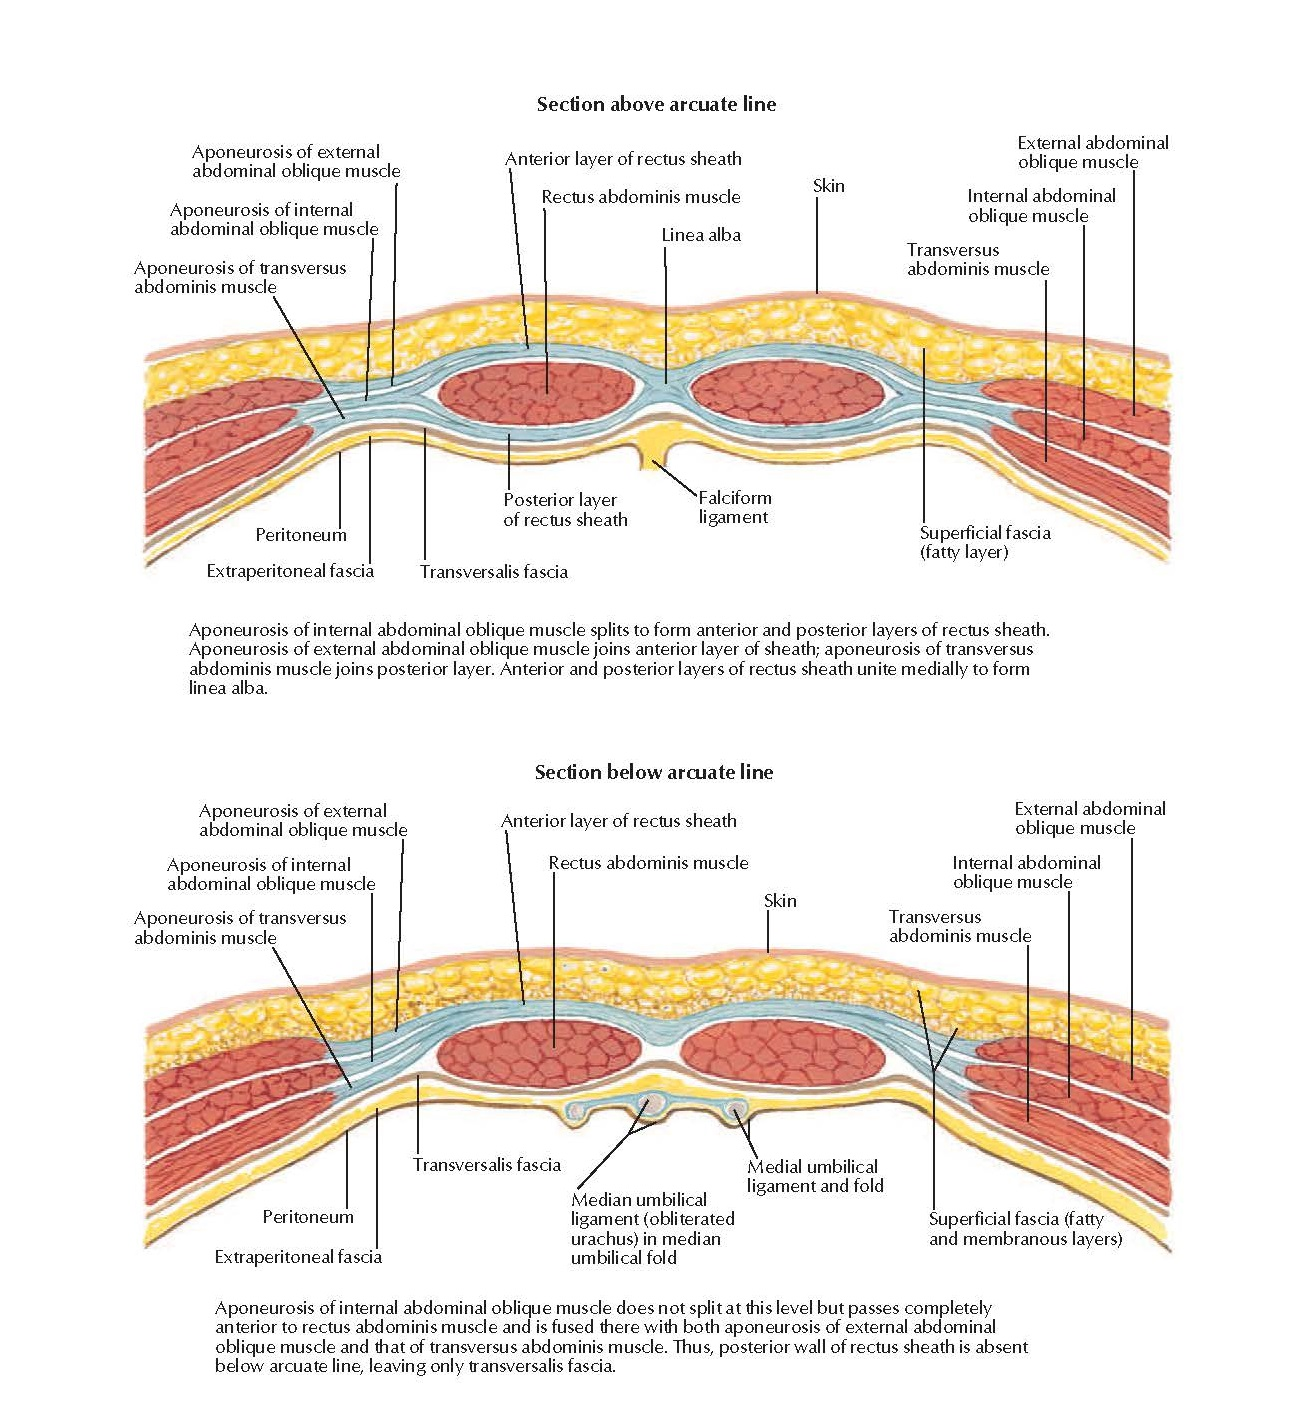 Rectus Sheath: Cross Section Anatomy  Section above arcuate line, Aponeurosis of external abdominal oblique muscle, Anterior layer of rectus sheath Rectus abdominis muscle, Linea alba, Skin, External abdominal oblique muscle, Internal abdominal oblique muscle, Transversus abdominis muscle, Peritoneum, Posterior layer of rectus sheath, Falciform ligament, Extraperitoneal fascia Transversalis fascia, Aponeurosis of external abdominal oblique muscle, Aponeurosis of internal abdominal oblique muscle, Aponeurosis of transversus abdominis muscle, Section below arcuate line, Anterior layer of rectus sheath, Transversus abdominis muscle, Peritoneum, Extraperitoneal fascia, Medial umbilical ligament and fold, Superficial fascia (fatty and membranous layers), Aponeurosis of internal abdominal oblique muscle does not split at this level but passes completely anterior to rectus abdominis muscle and is fused there with both aponeurosis of external abdominal oblique muscle and that of transversus abdominis muscle. Thus, posterior wall of rectus sheath is absent below arcuate line, leaving only transversalis fascia.